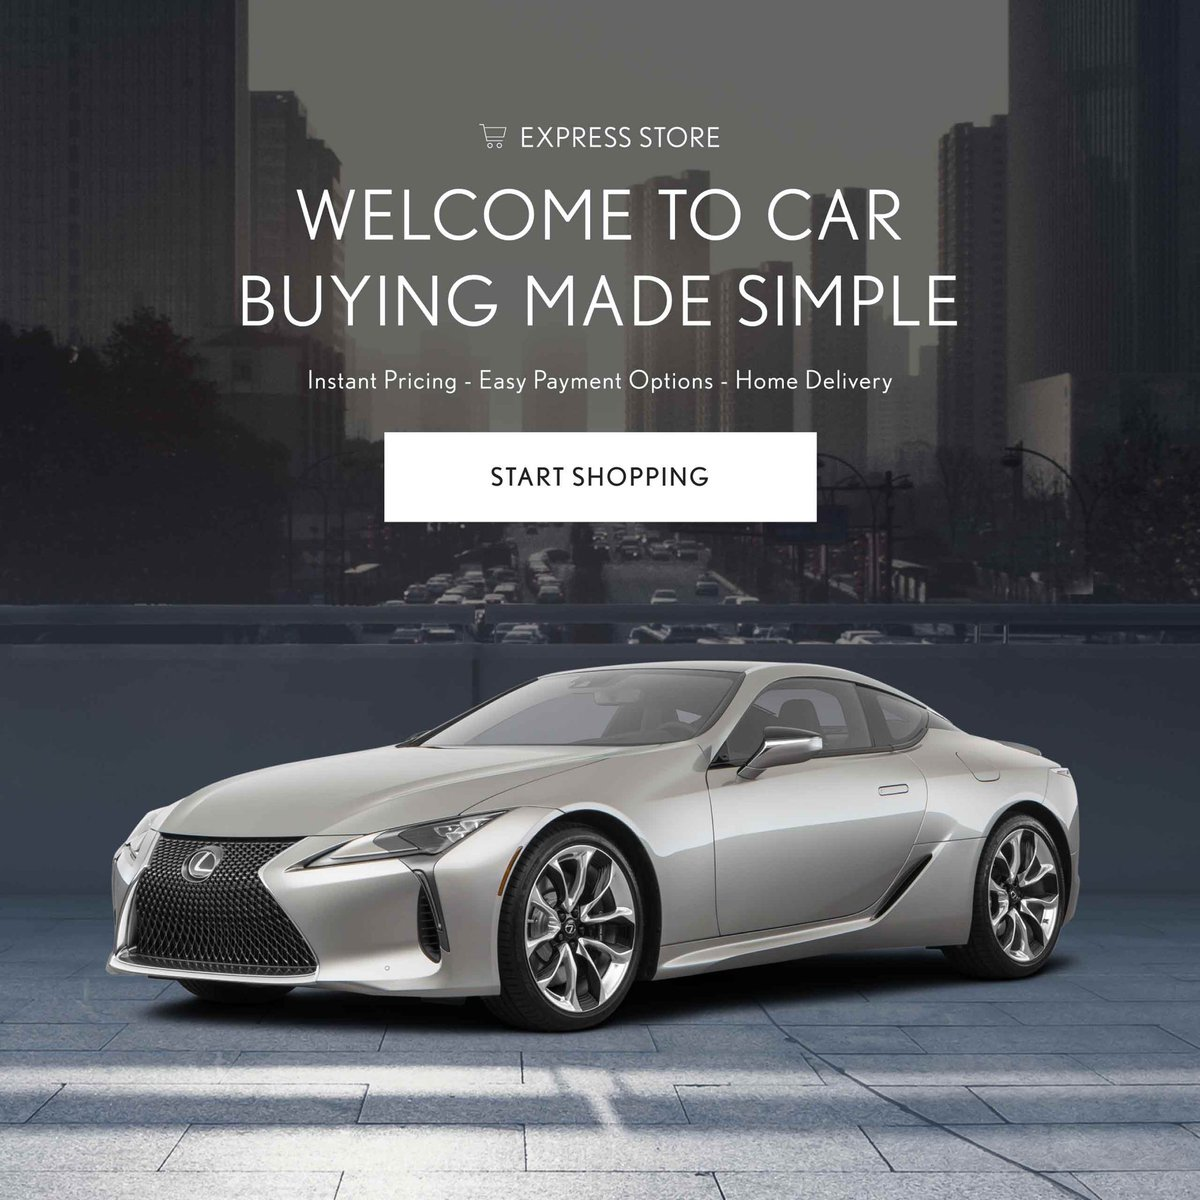 ... Simply On The Go Lexus Of Lexington Is With You With Our Express Store!  We Will Even Deliver To You!  Http://www.express.lexusoflexington.com/inventory ...